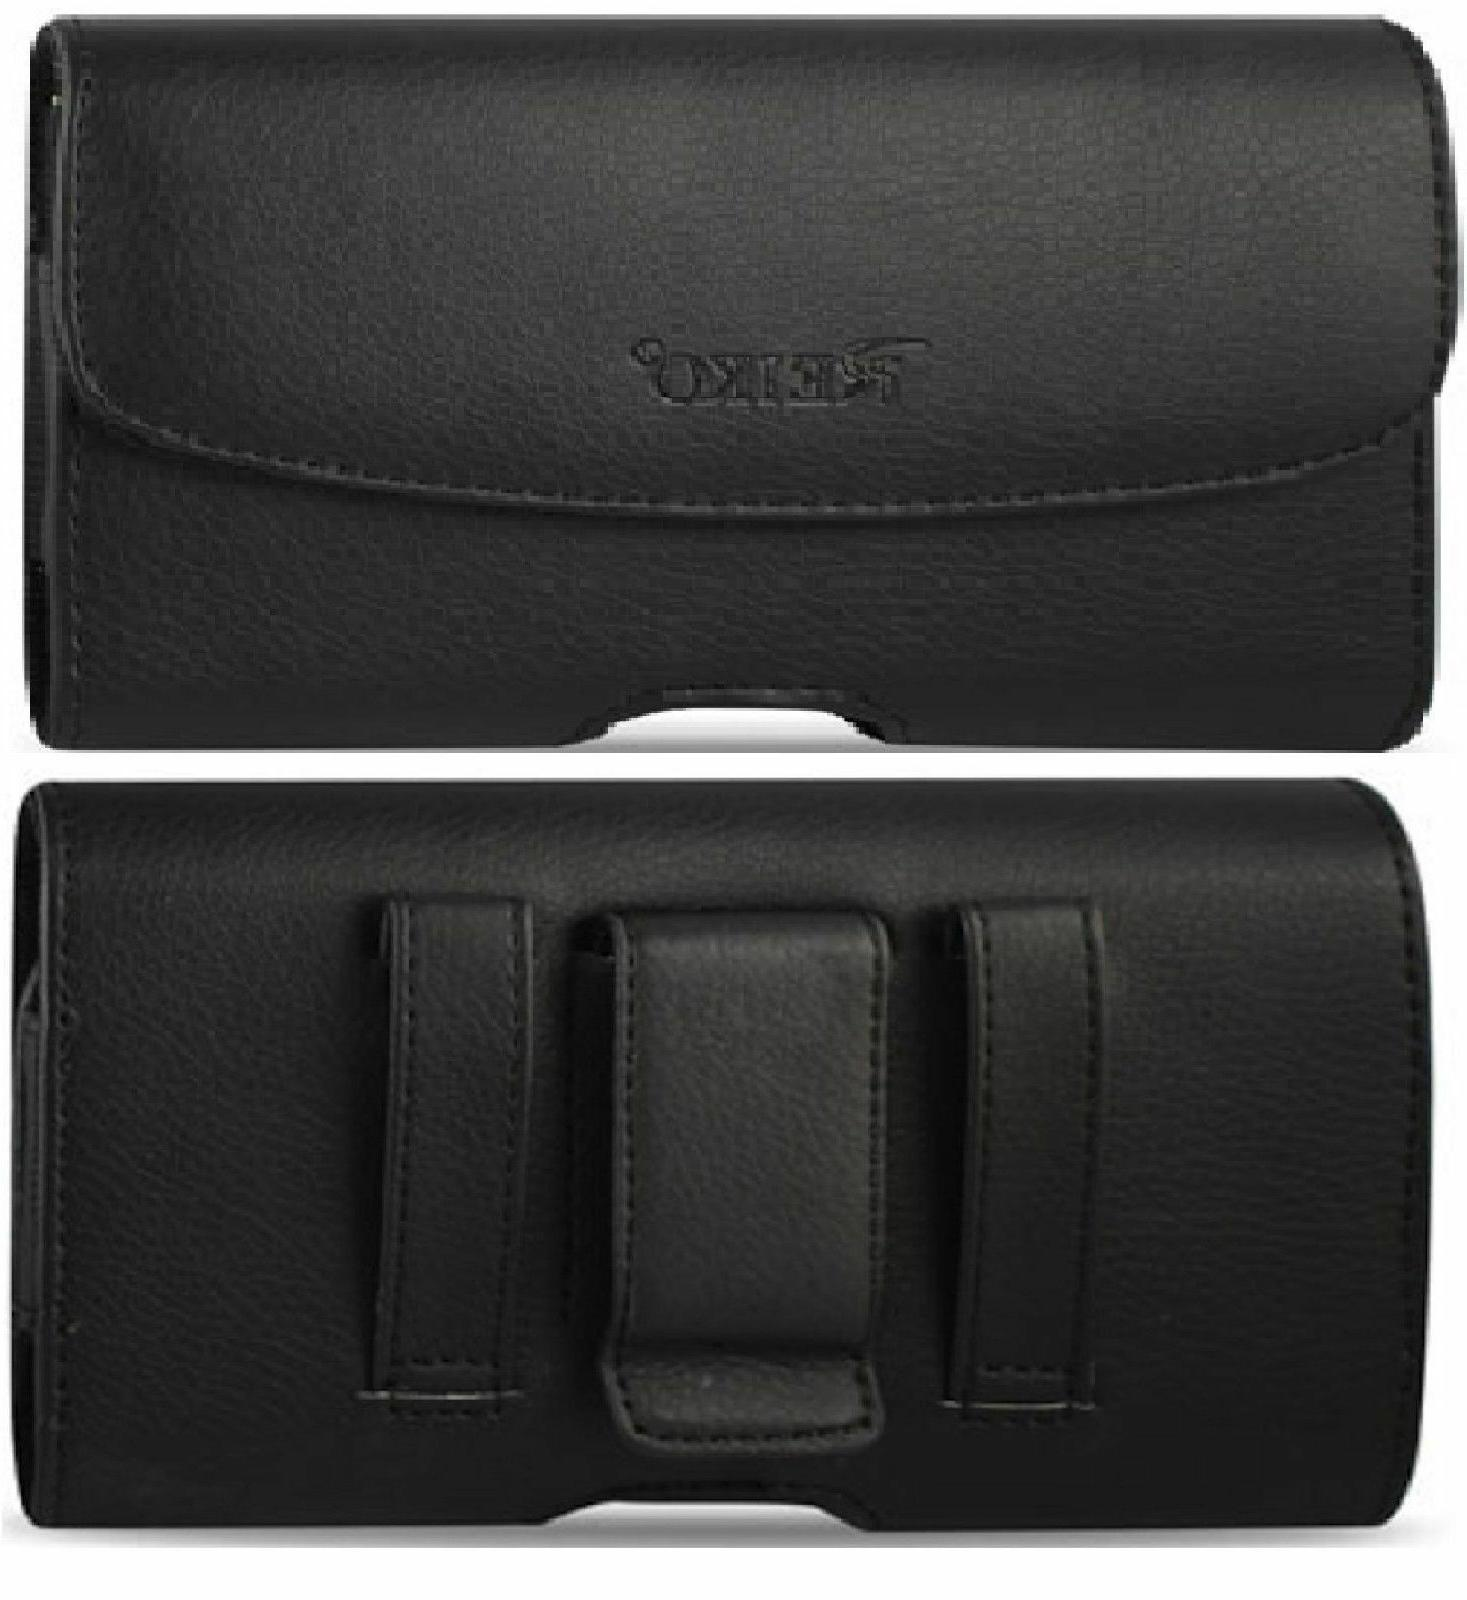 Leather Case With Belt Clip & Loop for SPRINT Kyocera DuraXT